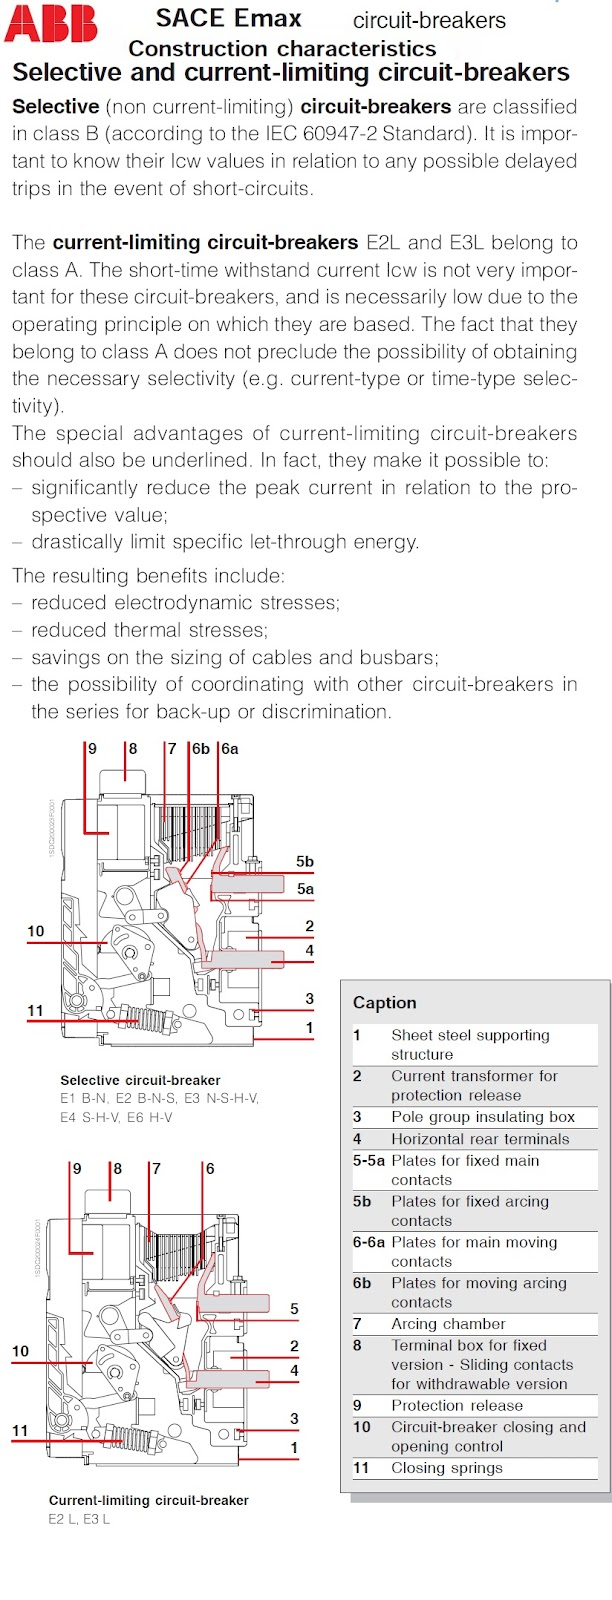 small resolution of abb sace emax circuit breakers selective and current limiting circuit breakers